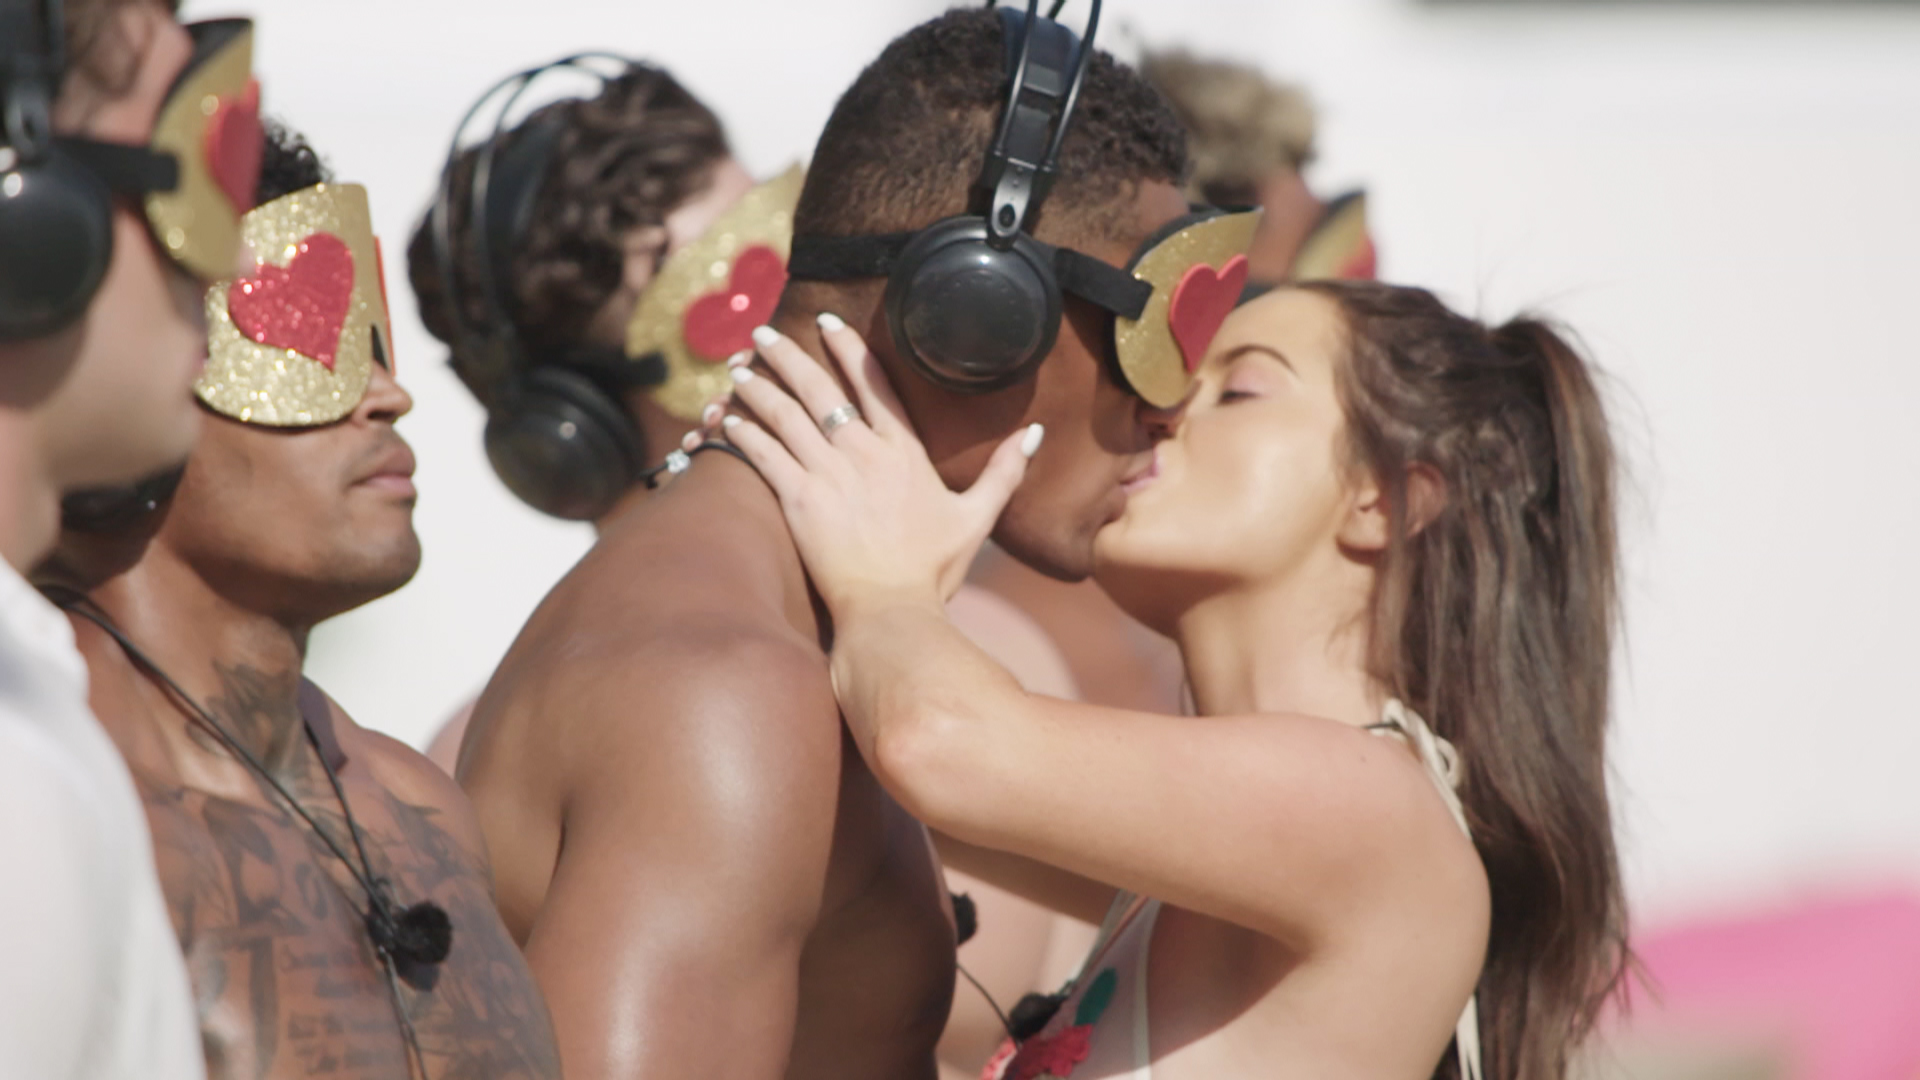 Maura and Tom on Love Island: What happened between Maura and Tom?